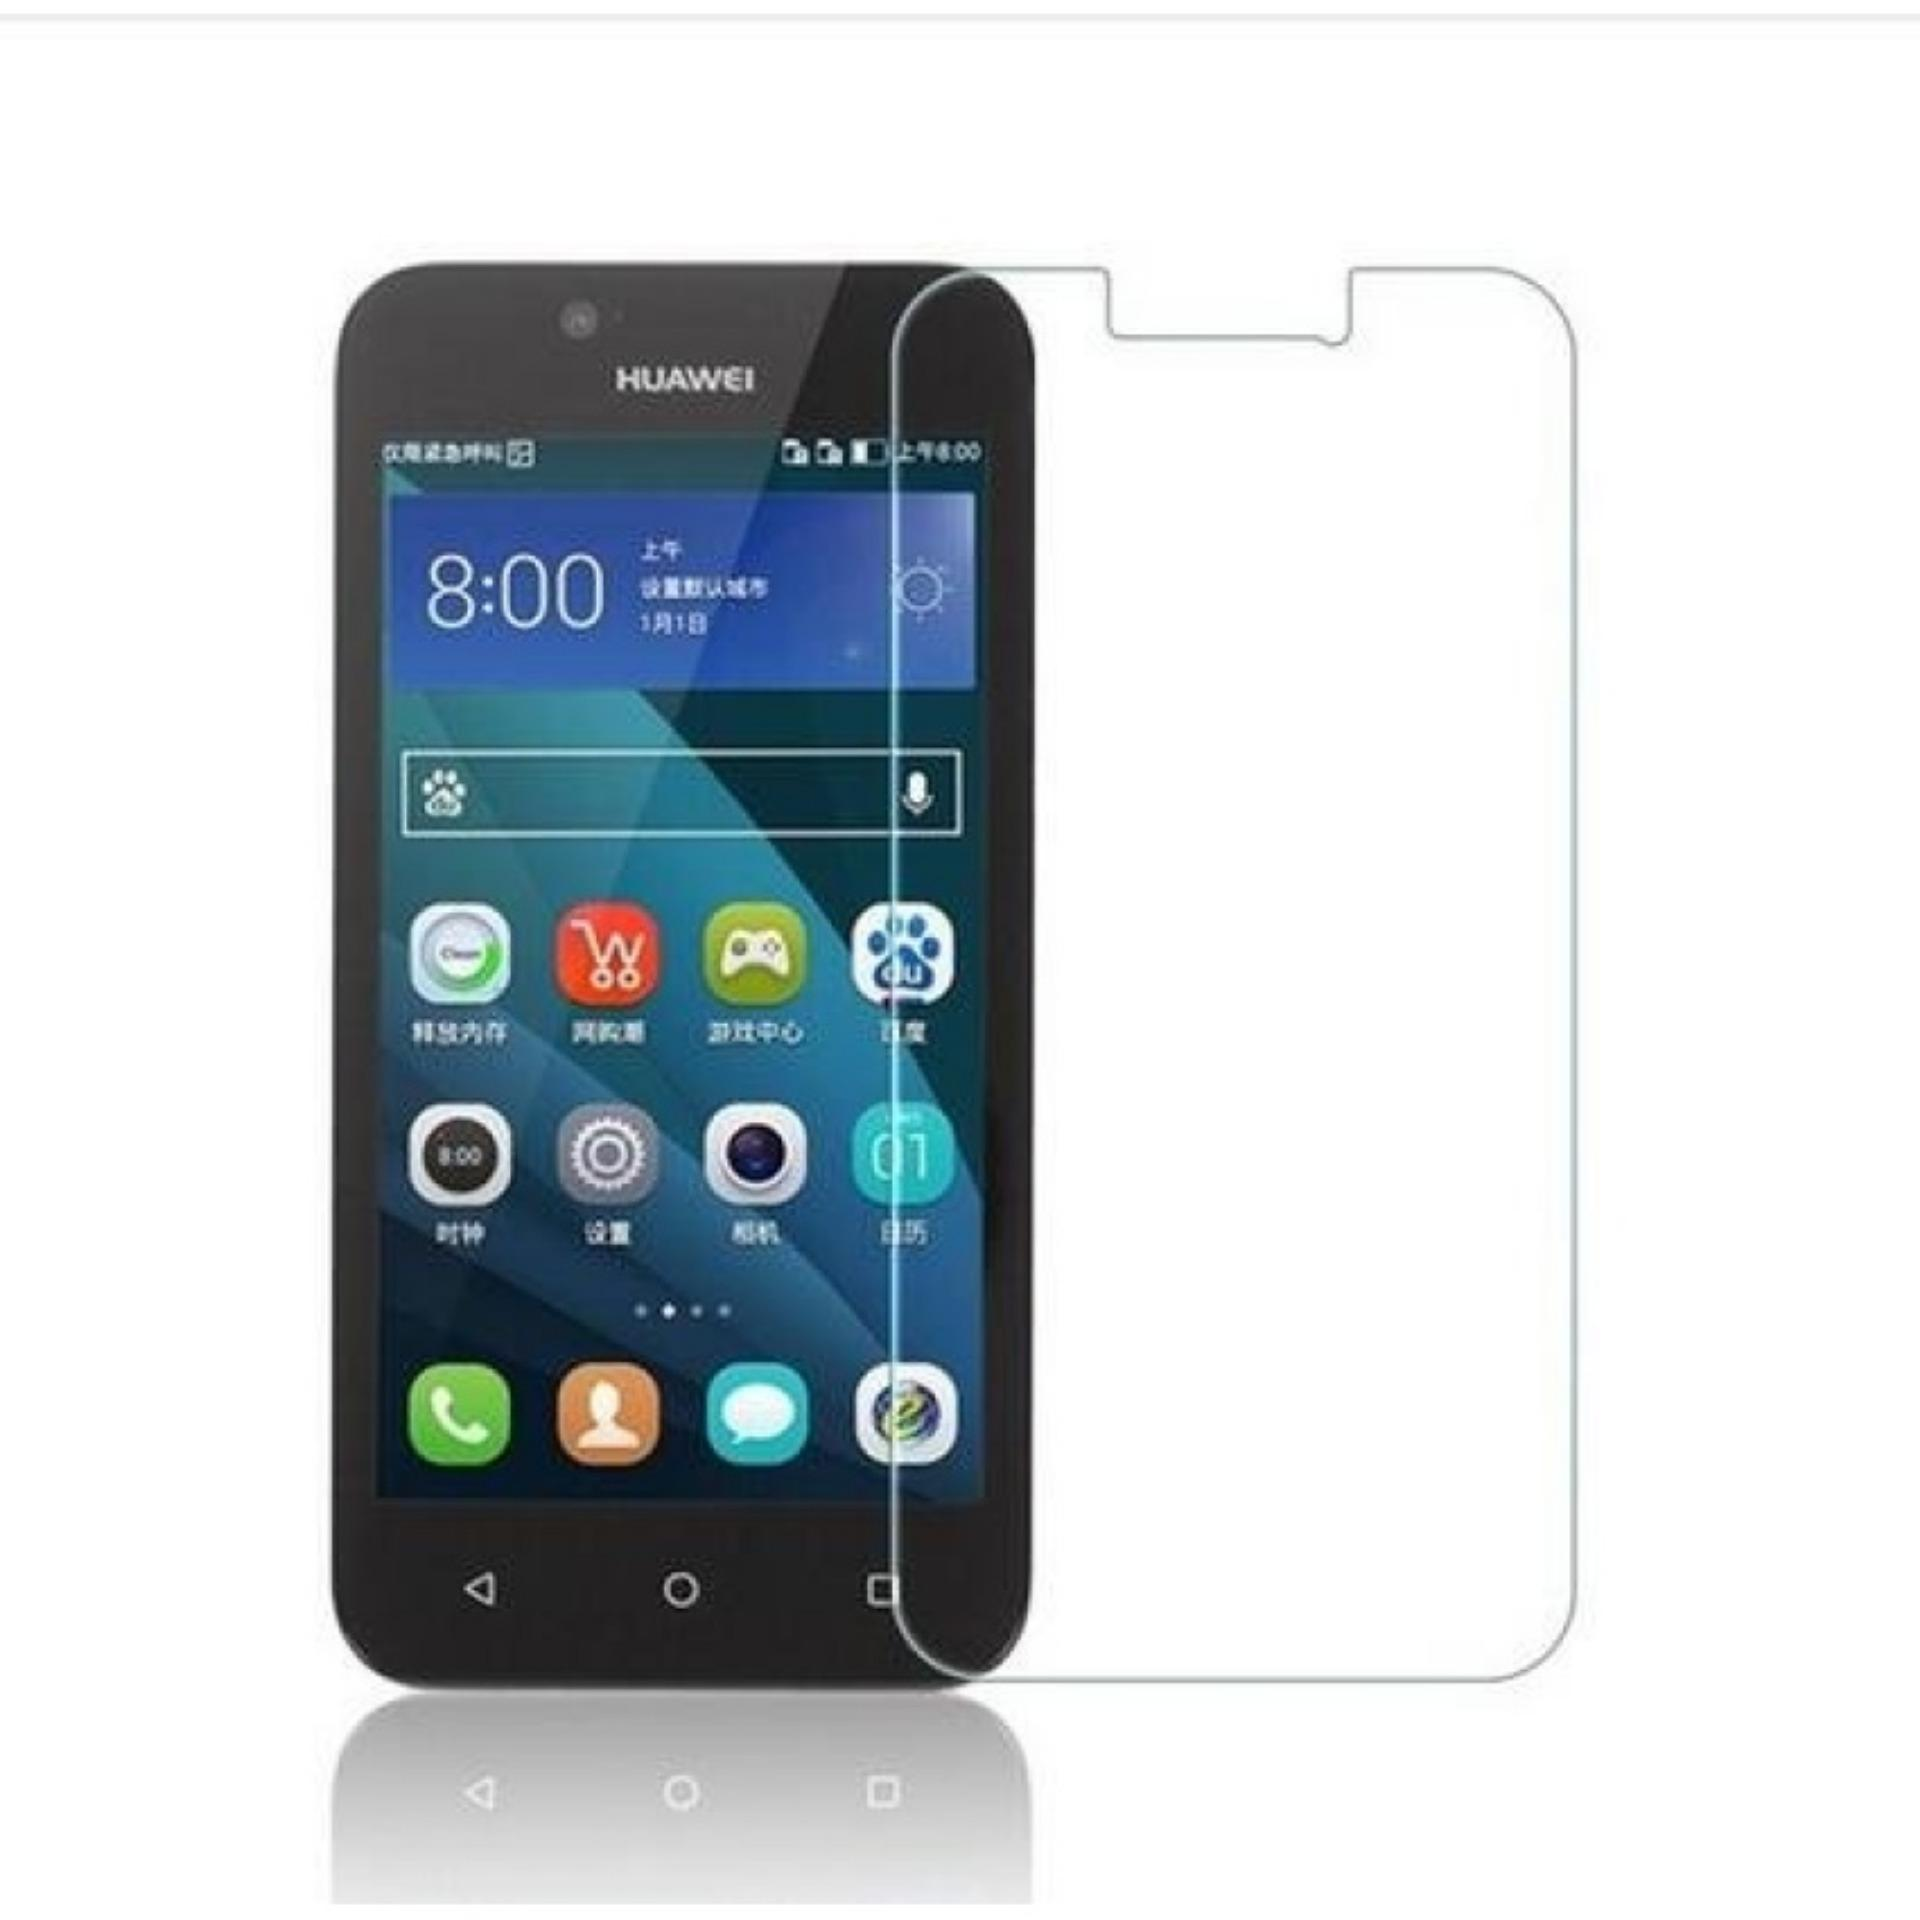 Vn Huawei Ascend Y5 / Batik / Y560 Tempered Glass 9H Screen Protector 0.32mm - Transparan